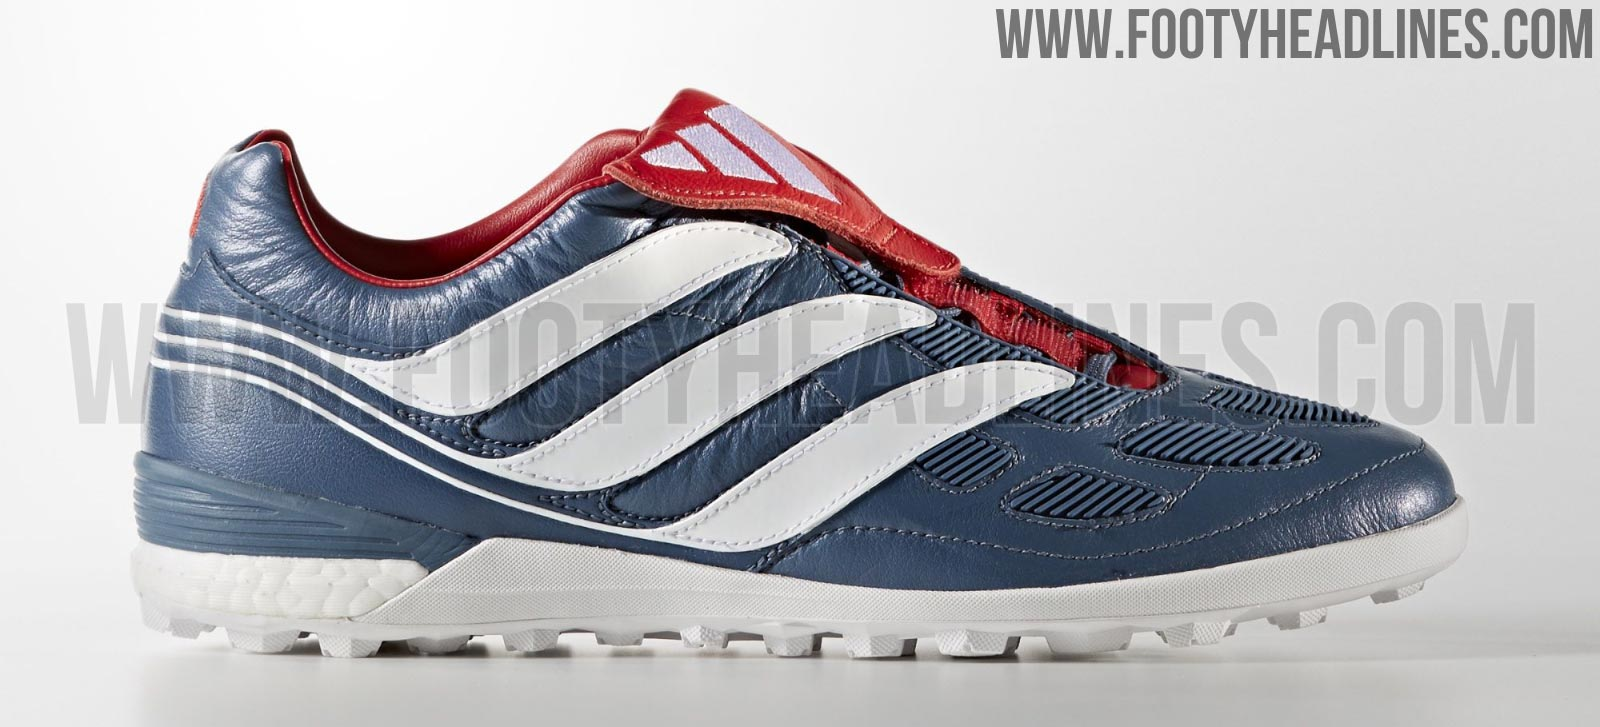 Adidas Predator Precision Turf Shoes Released Footy